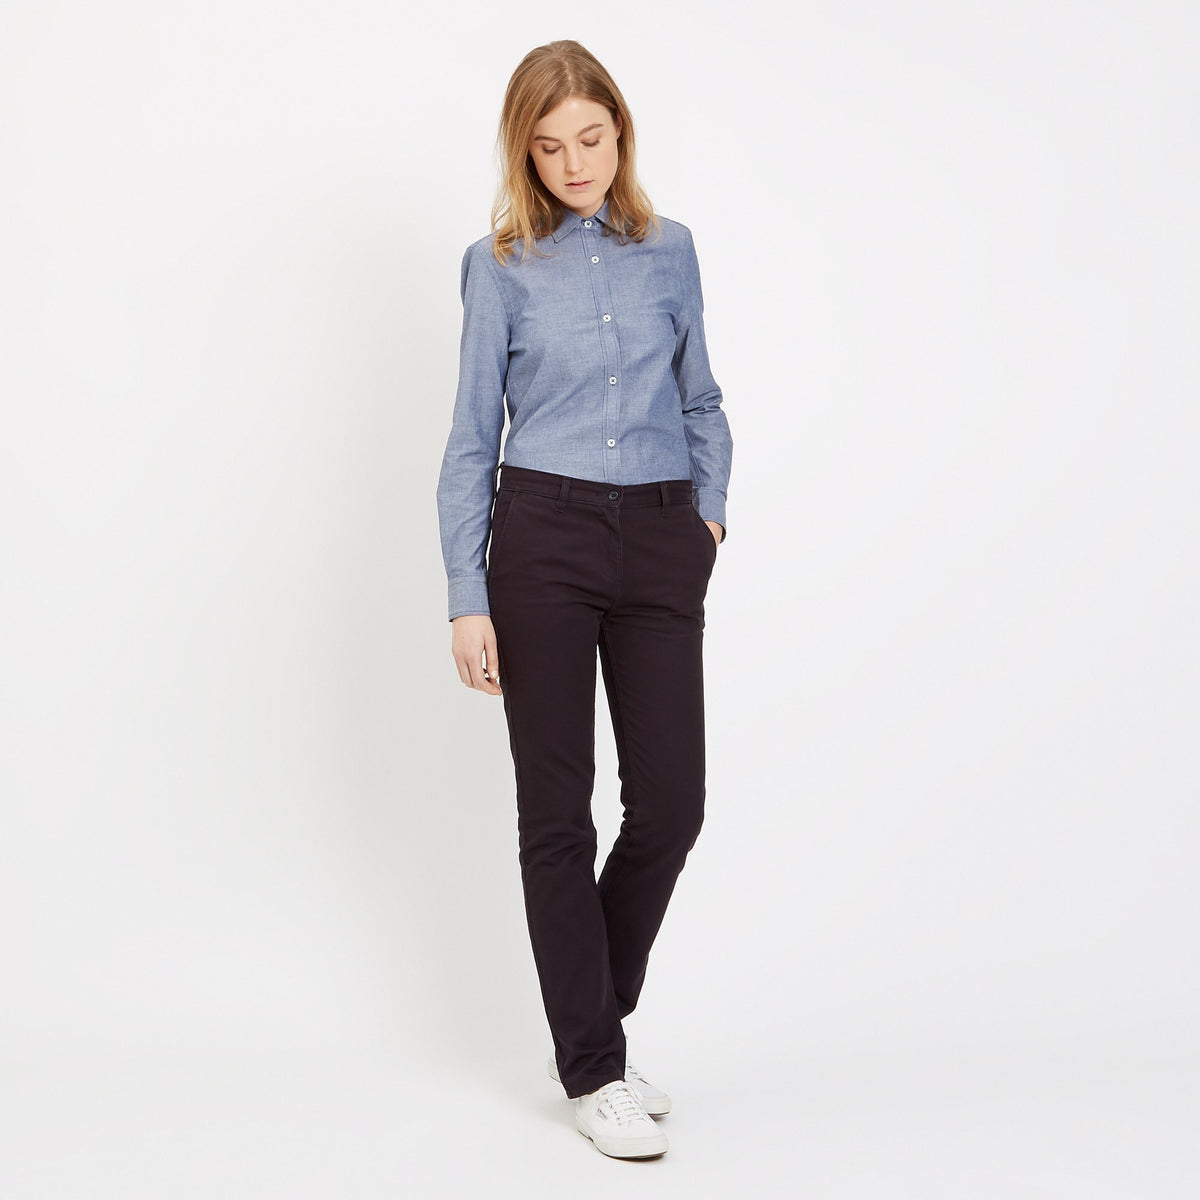 Women's Chinos Navy - Community Clothing